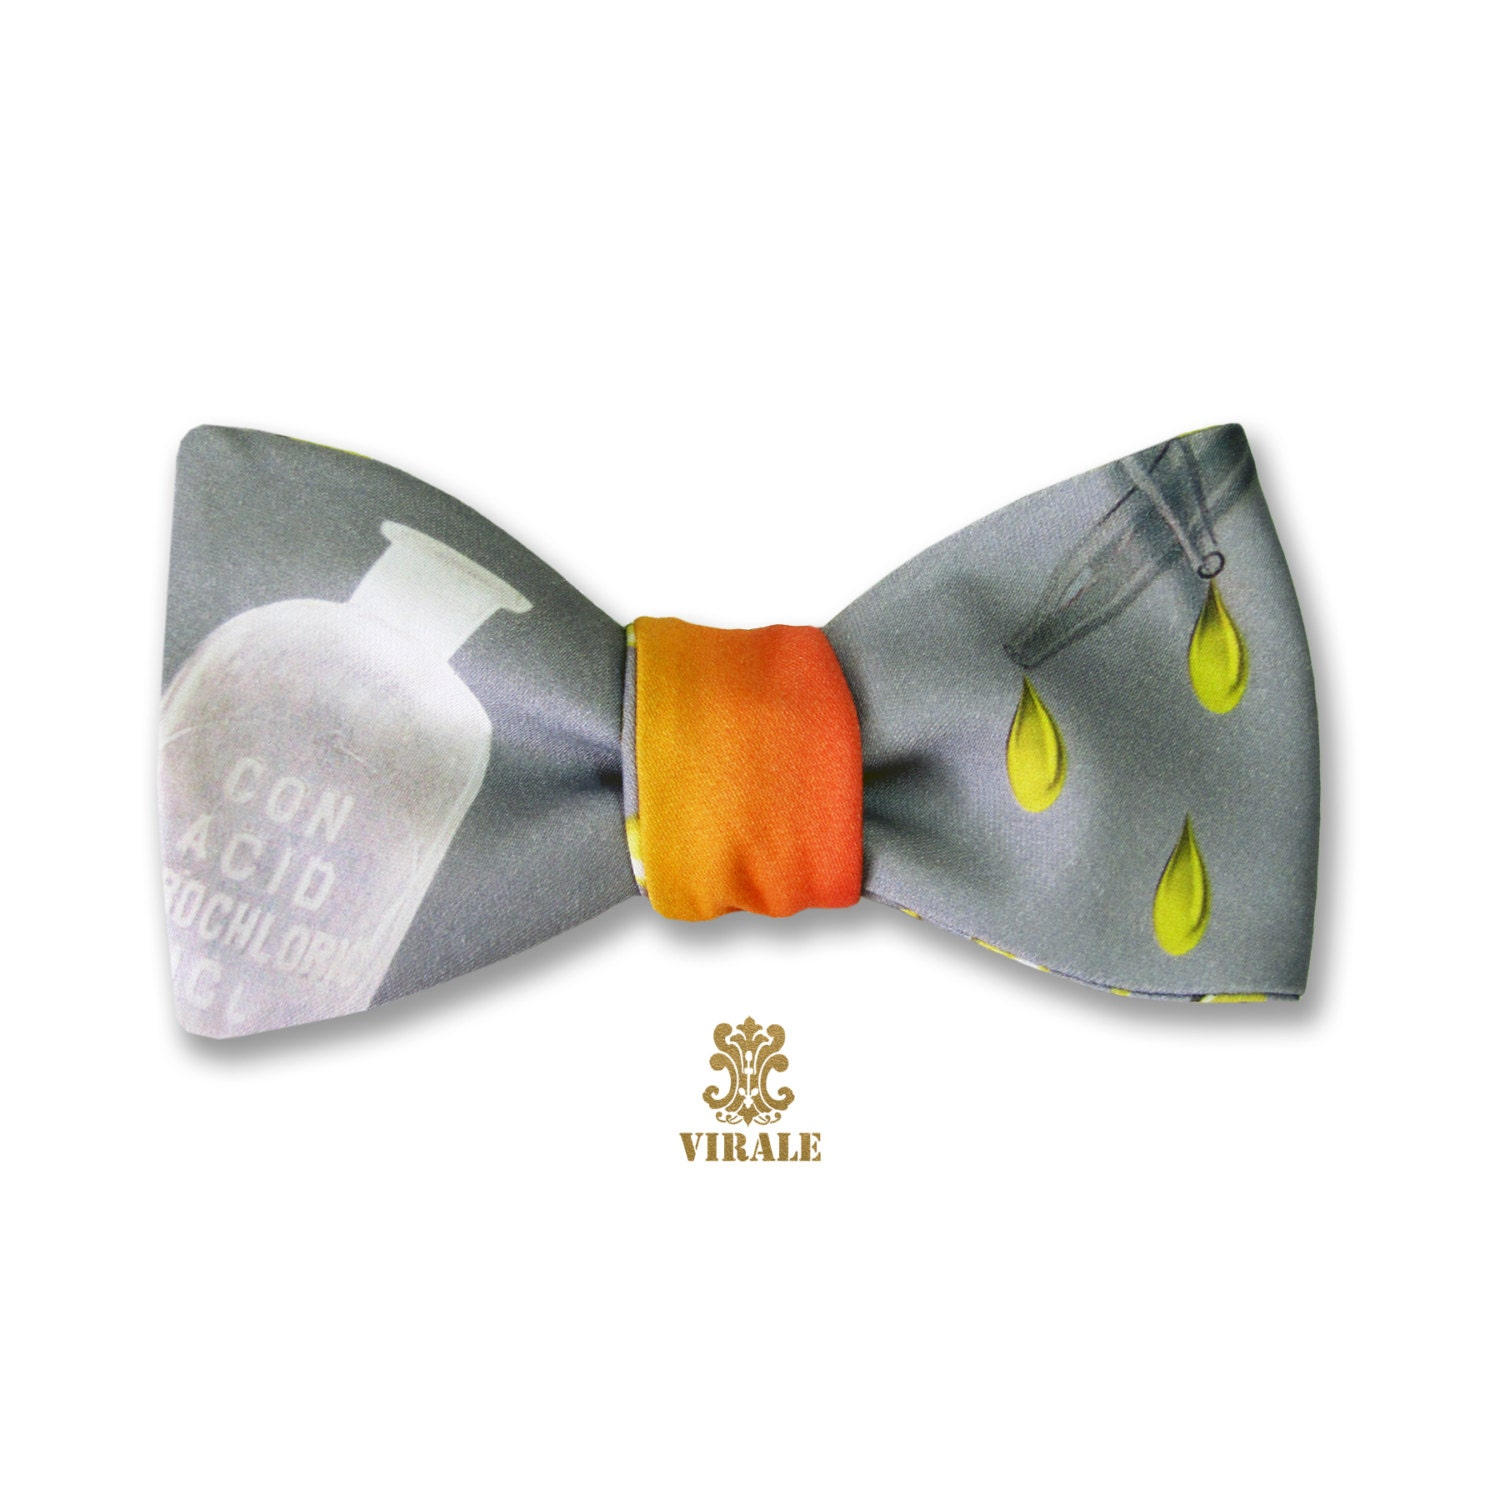 Virale By Dr B Staining Acids Bow Tie Inspired By Dorothy Parker